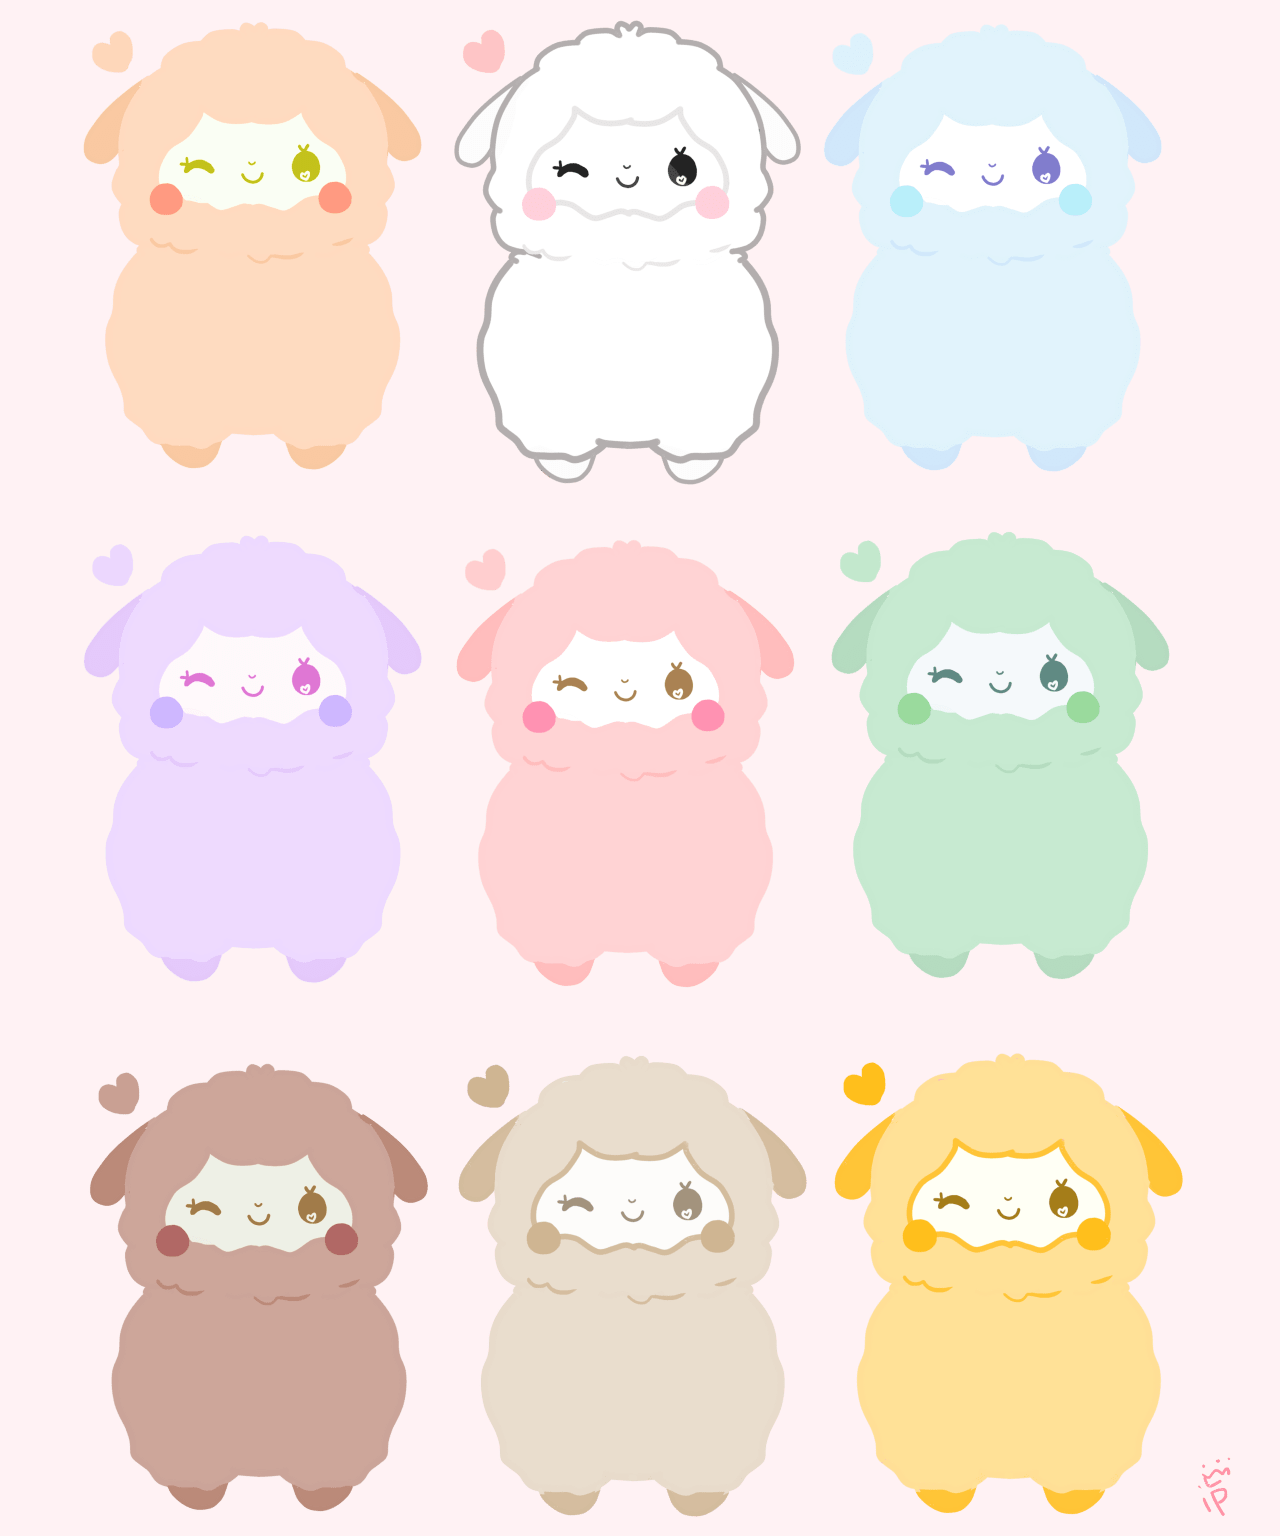 Tumblr Sticker Pastel Blippo Kawaii Shop Prince Insomniac Pastel Rainbow